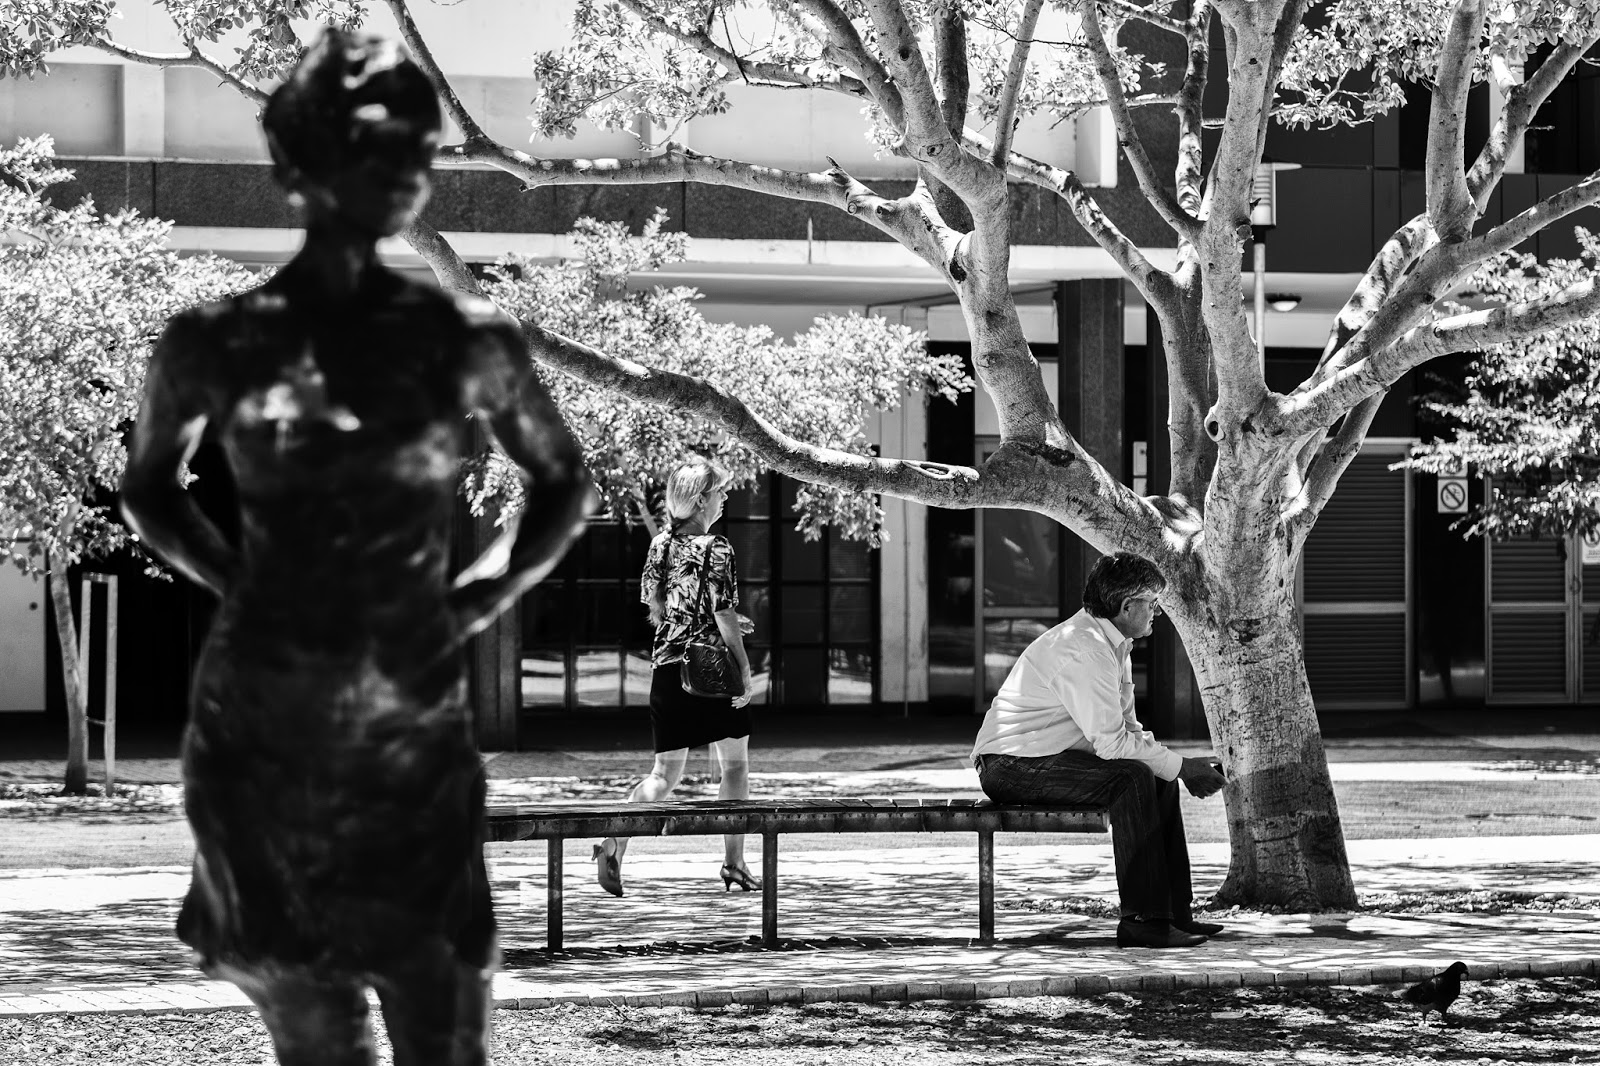 A man sits on a bench behind a statue of a woman while another woman walks past